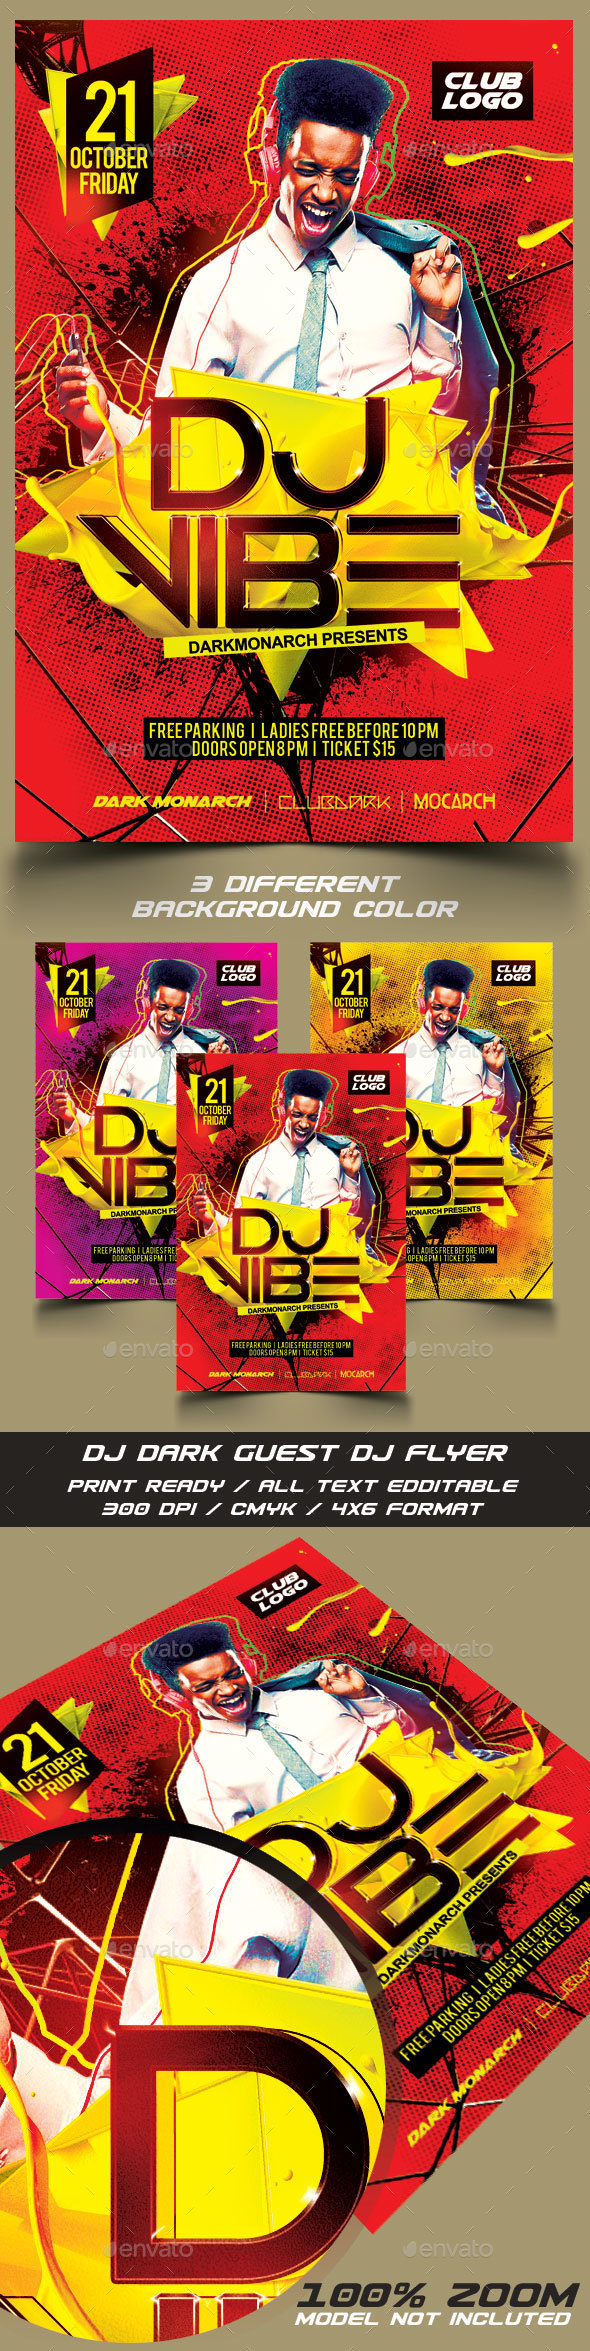 Dj Guest Flyer Template - Flyers Print Templates